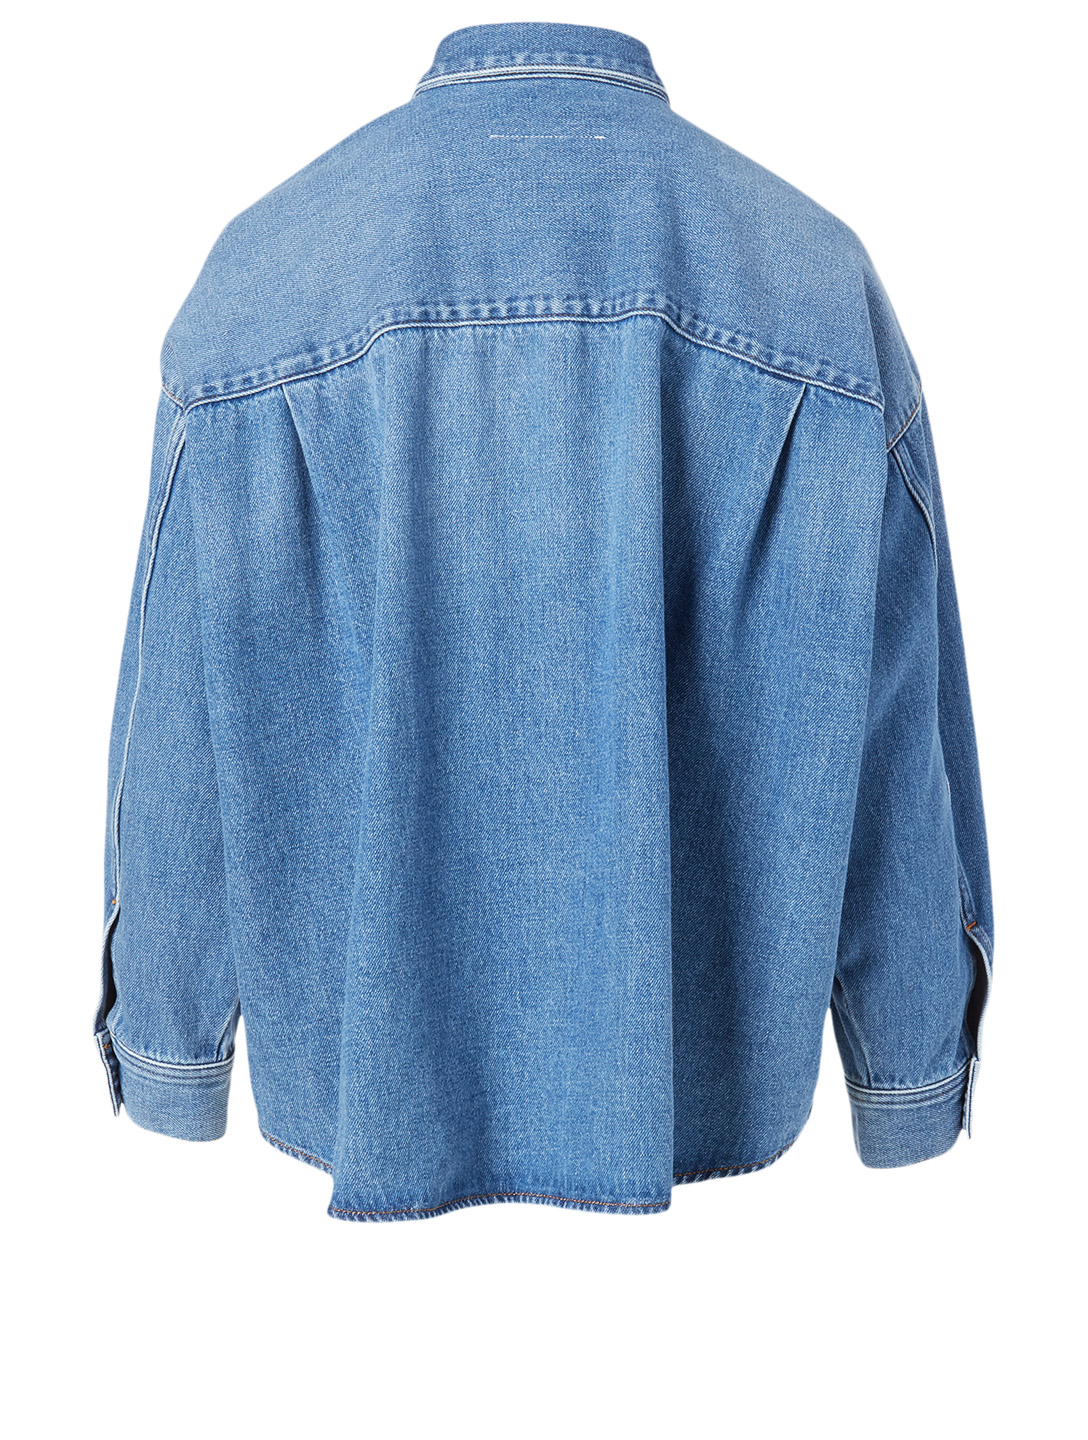 MM6 MAISON MARGIELA Denim Shirt Jacket Women's Blue